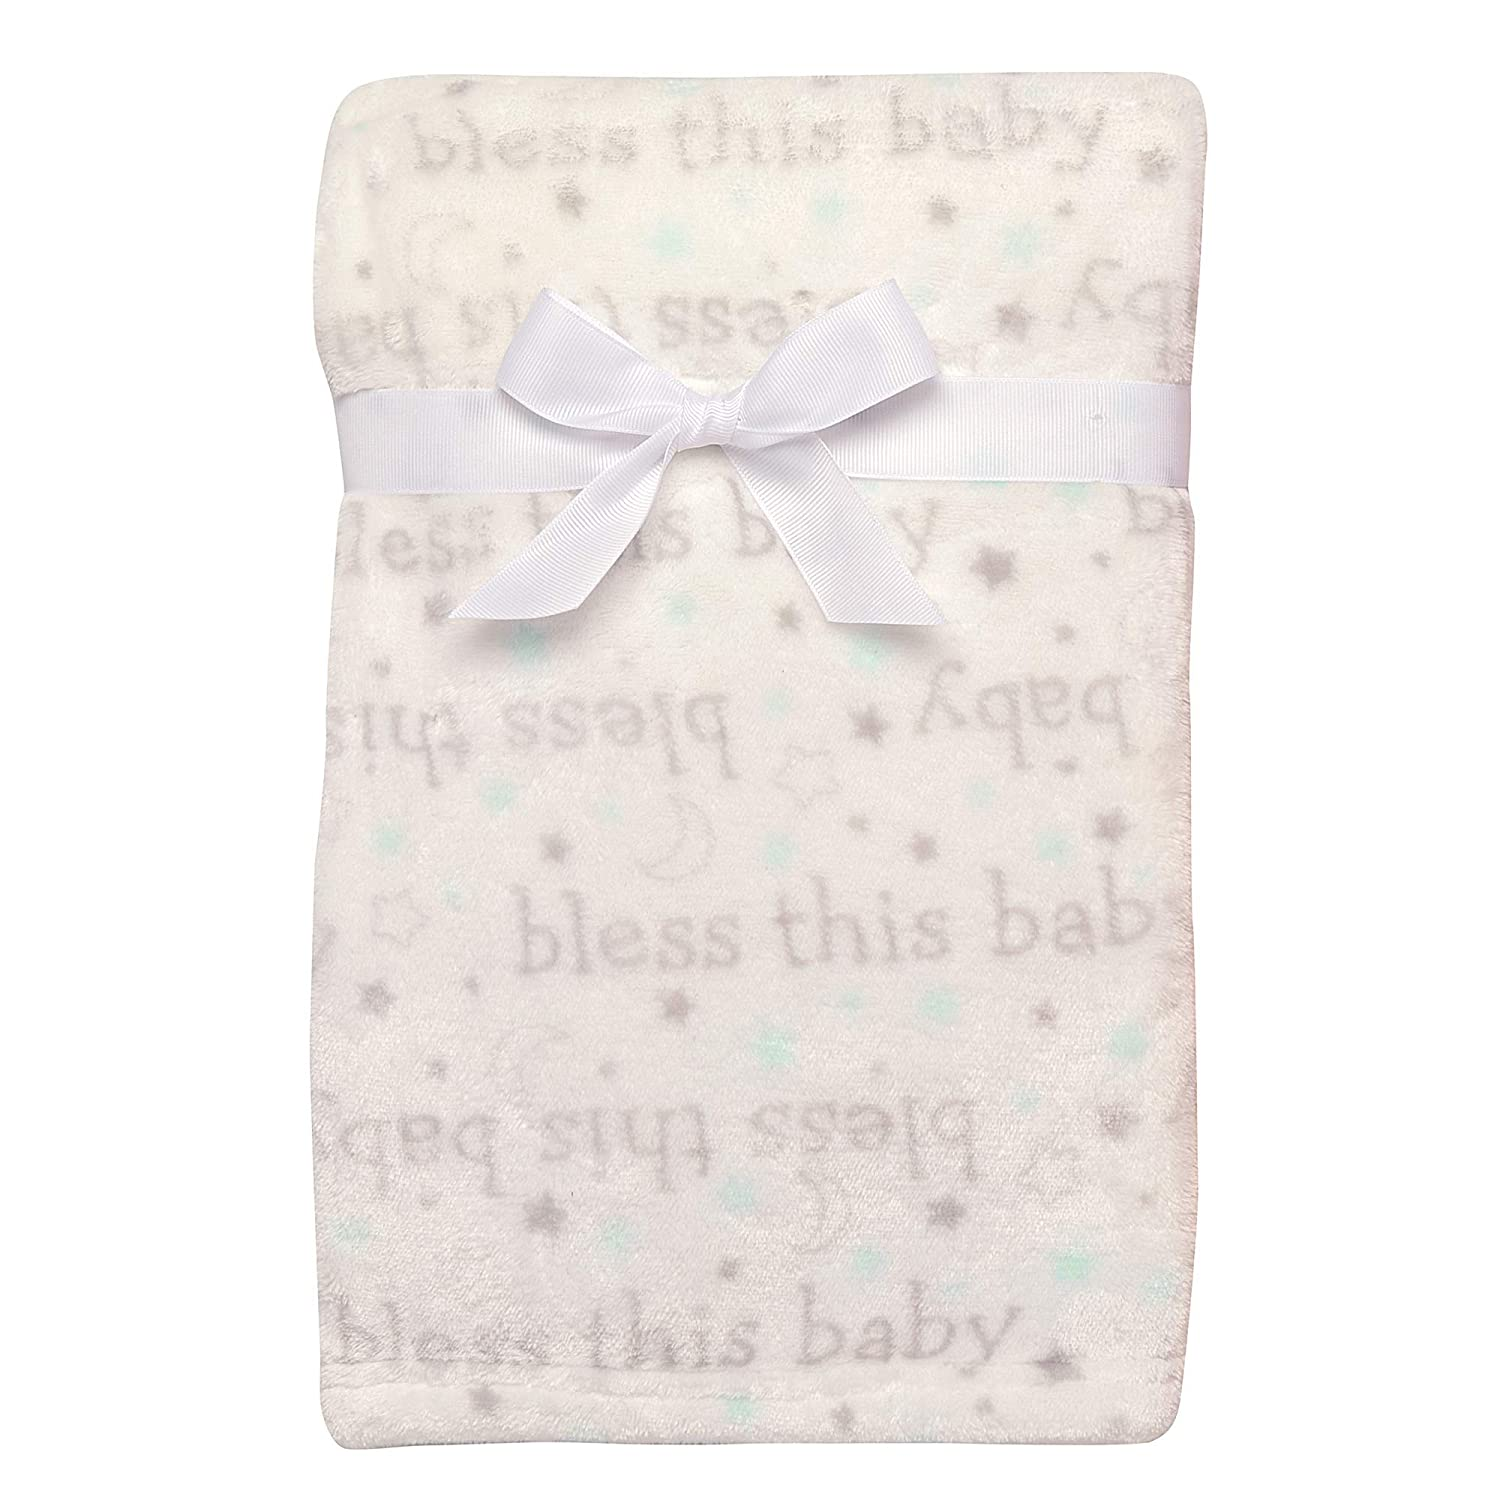 "Baby Starters Super Soft Bless This Baby Blanket for Newborns and New Moms (White and Grey, 30""x40"")"